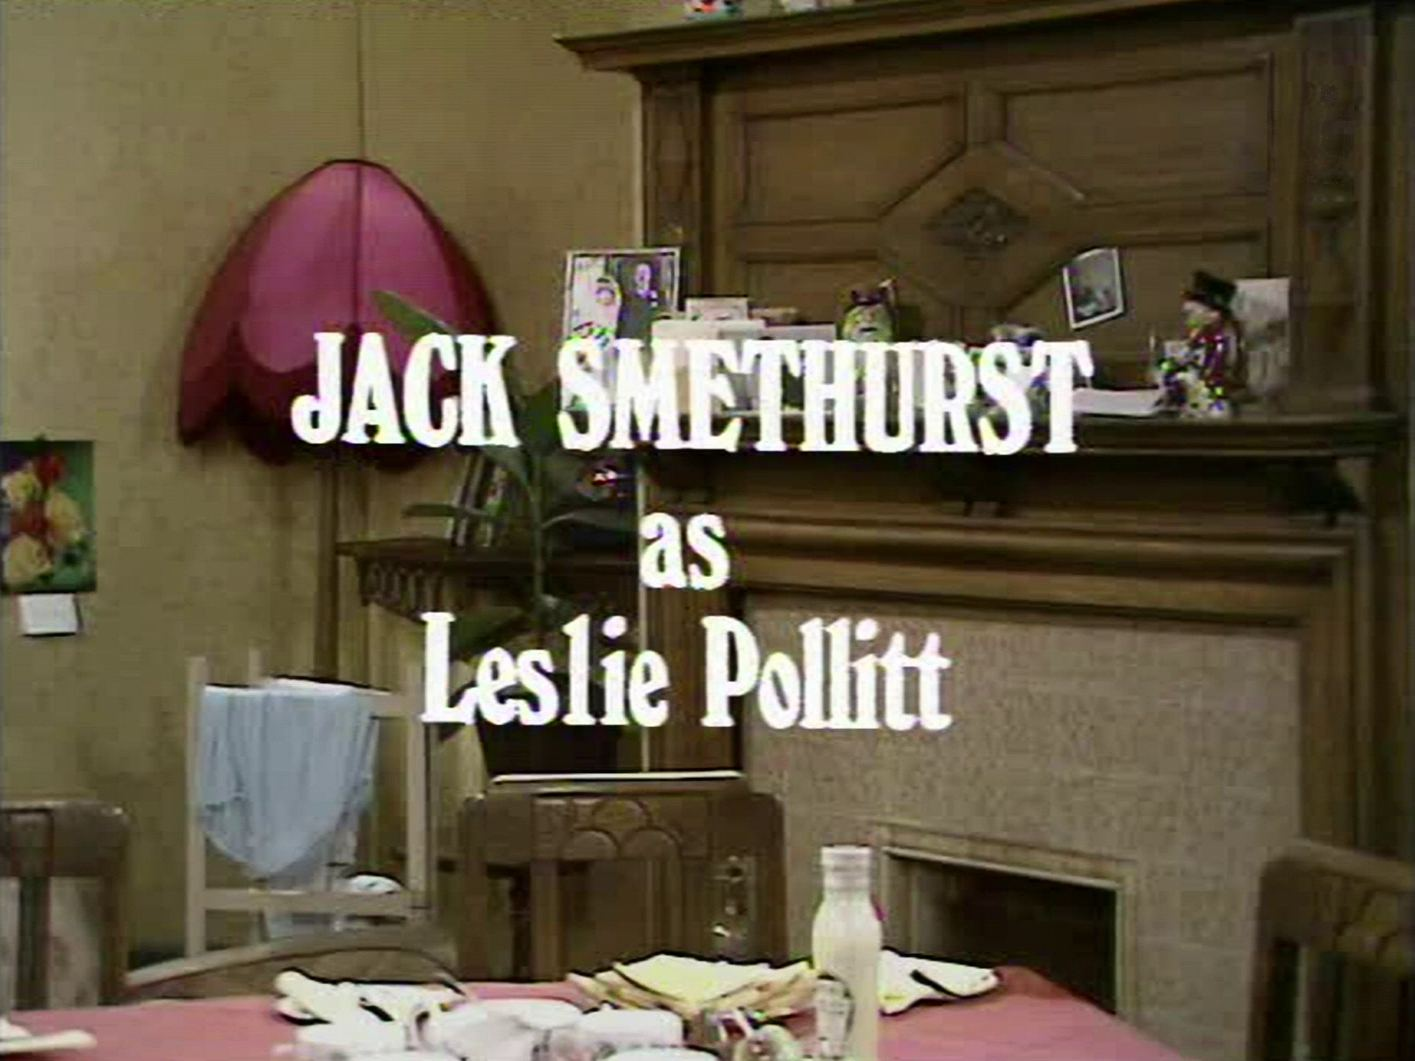 Main title from the 1970 'Sunday Tea' episode of For the Love of Ada (6).  Jack Smethurst as Leslie Pollitt